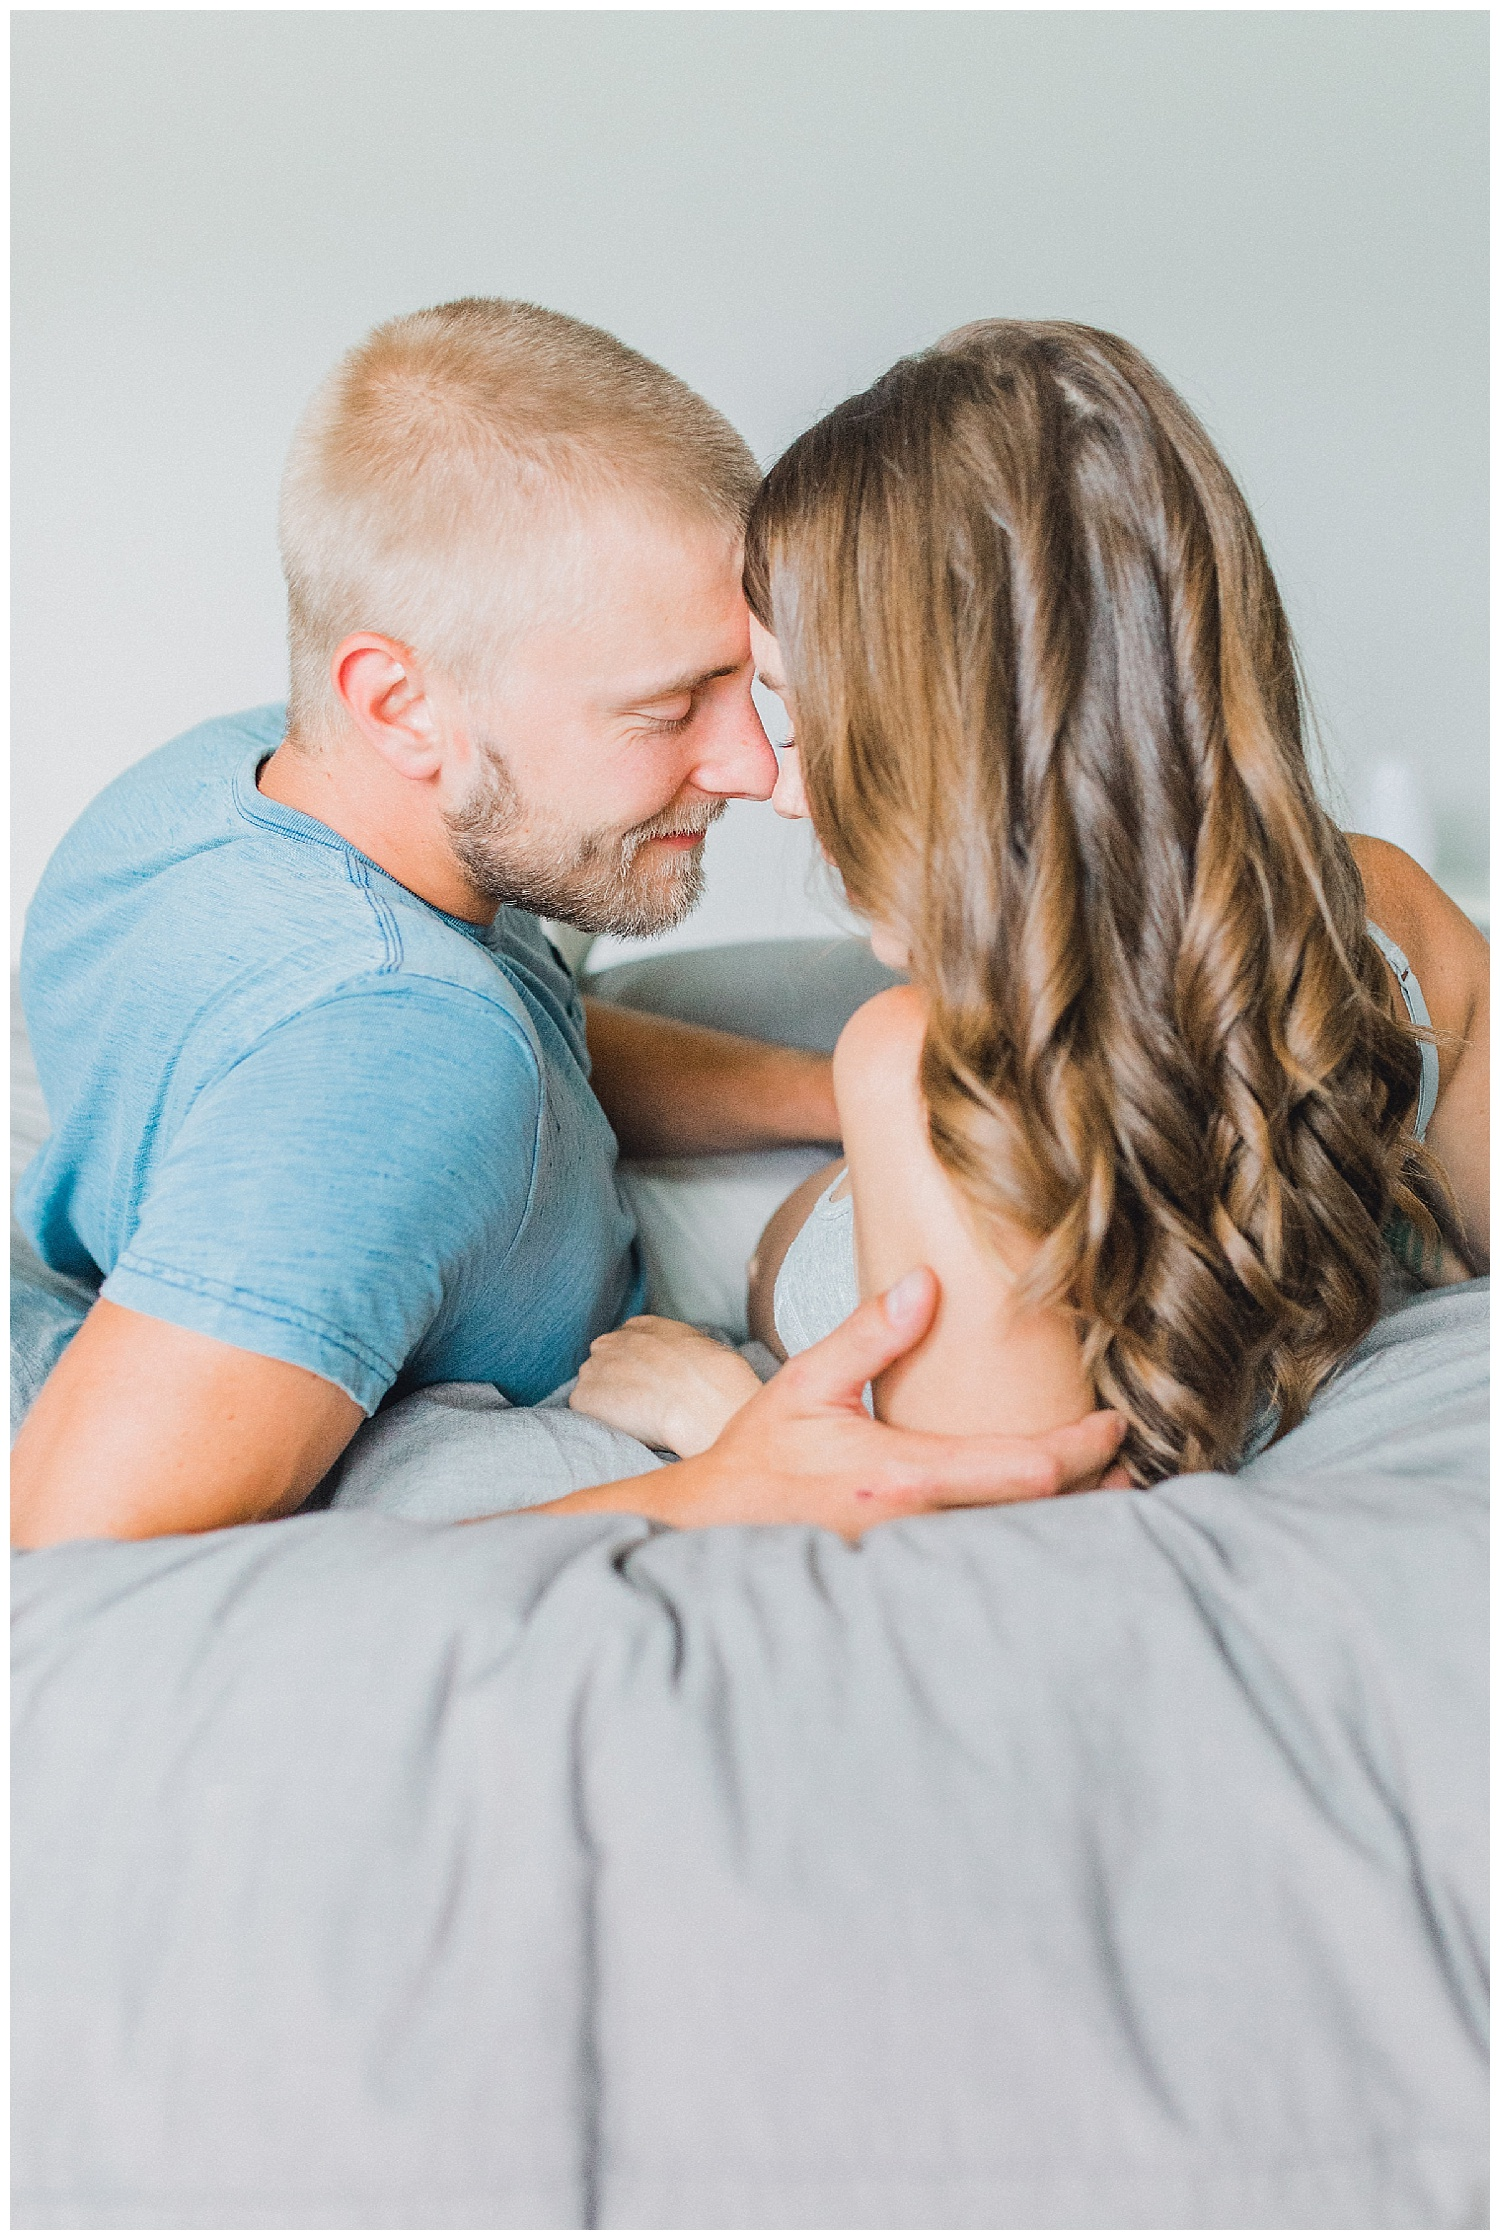 The Most Perfect In Home Maternity Lifestyle Photo Session | Pregnancy Goals | Emma Rose Company Seattle and Portland Wedding and Potrait Photographer | Dream Chasers Workshop_0026.jpg